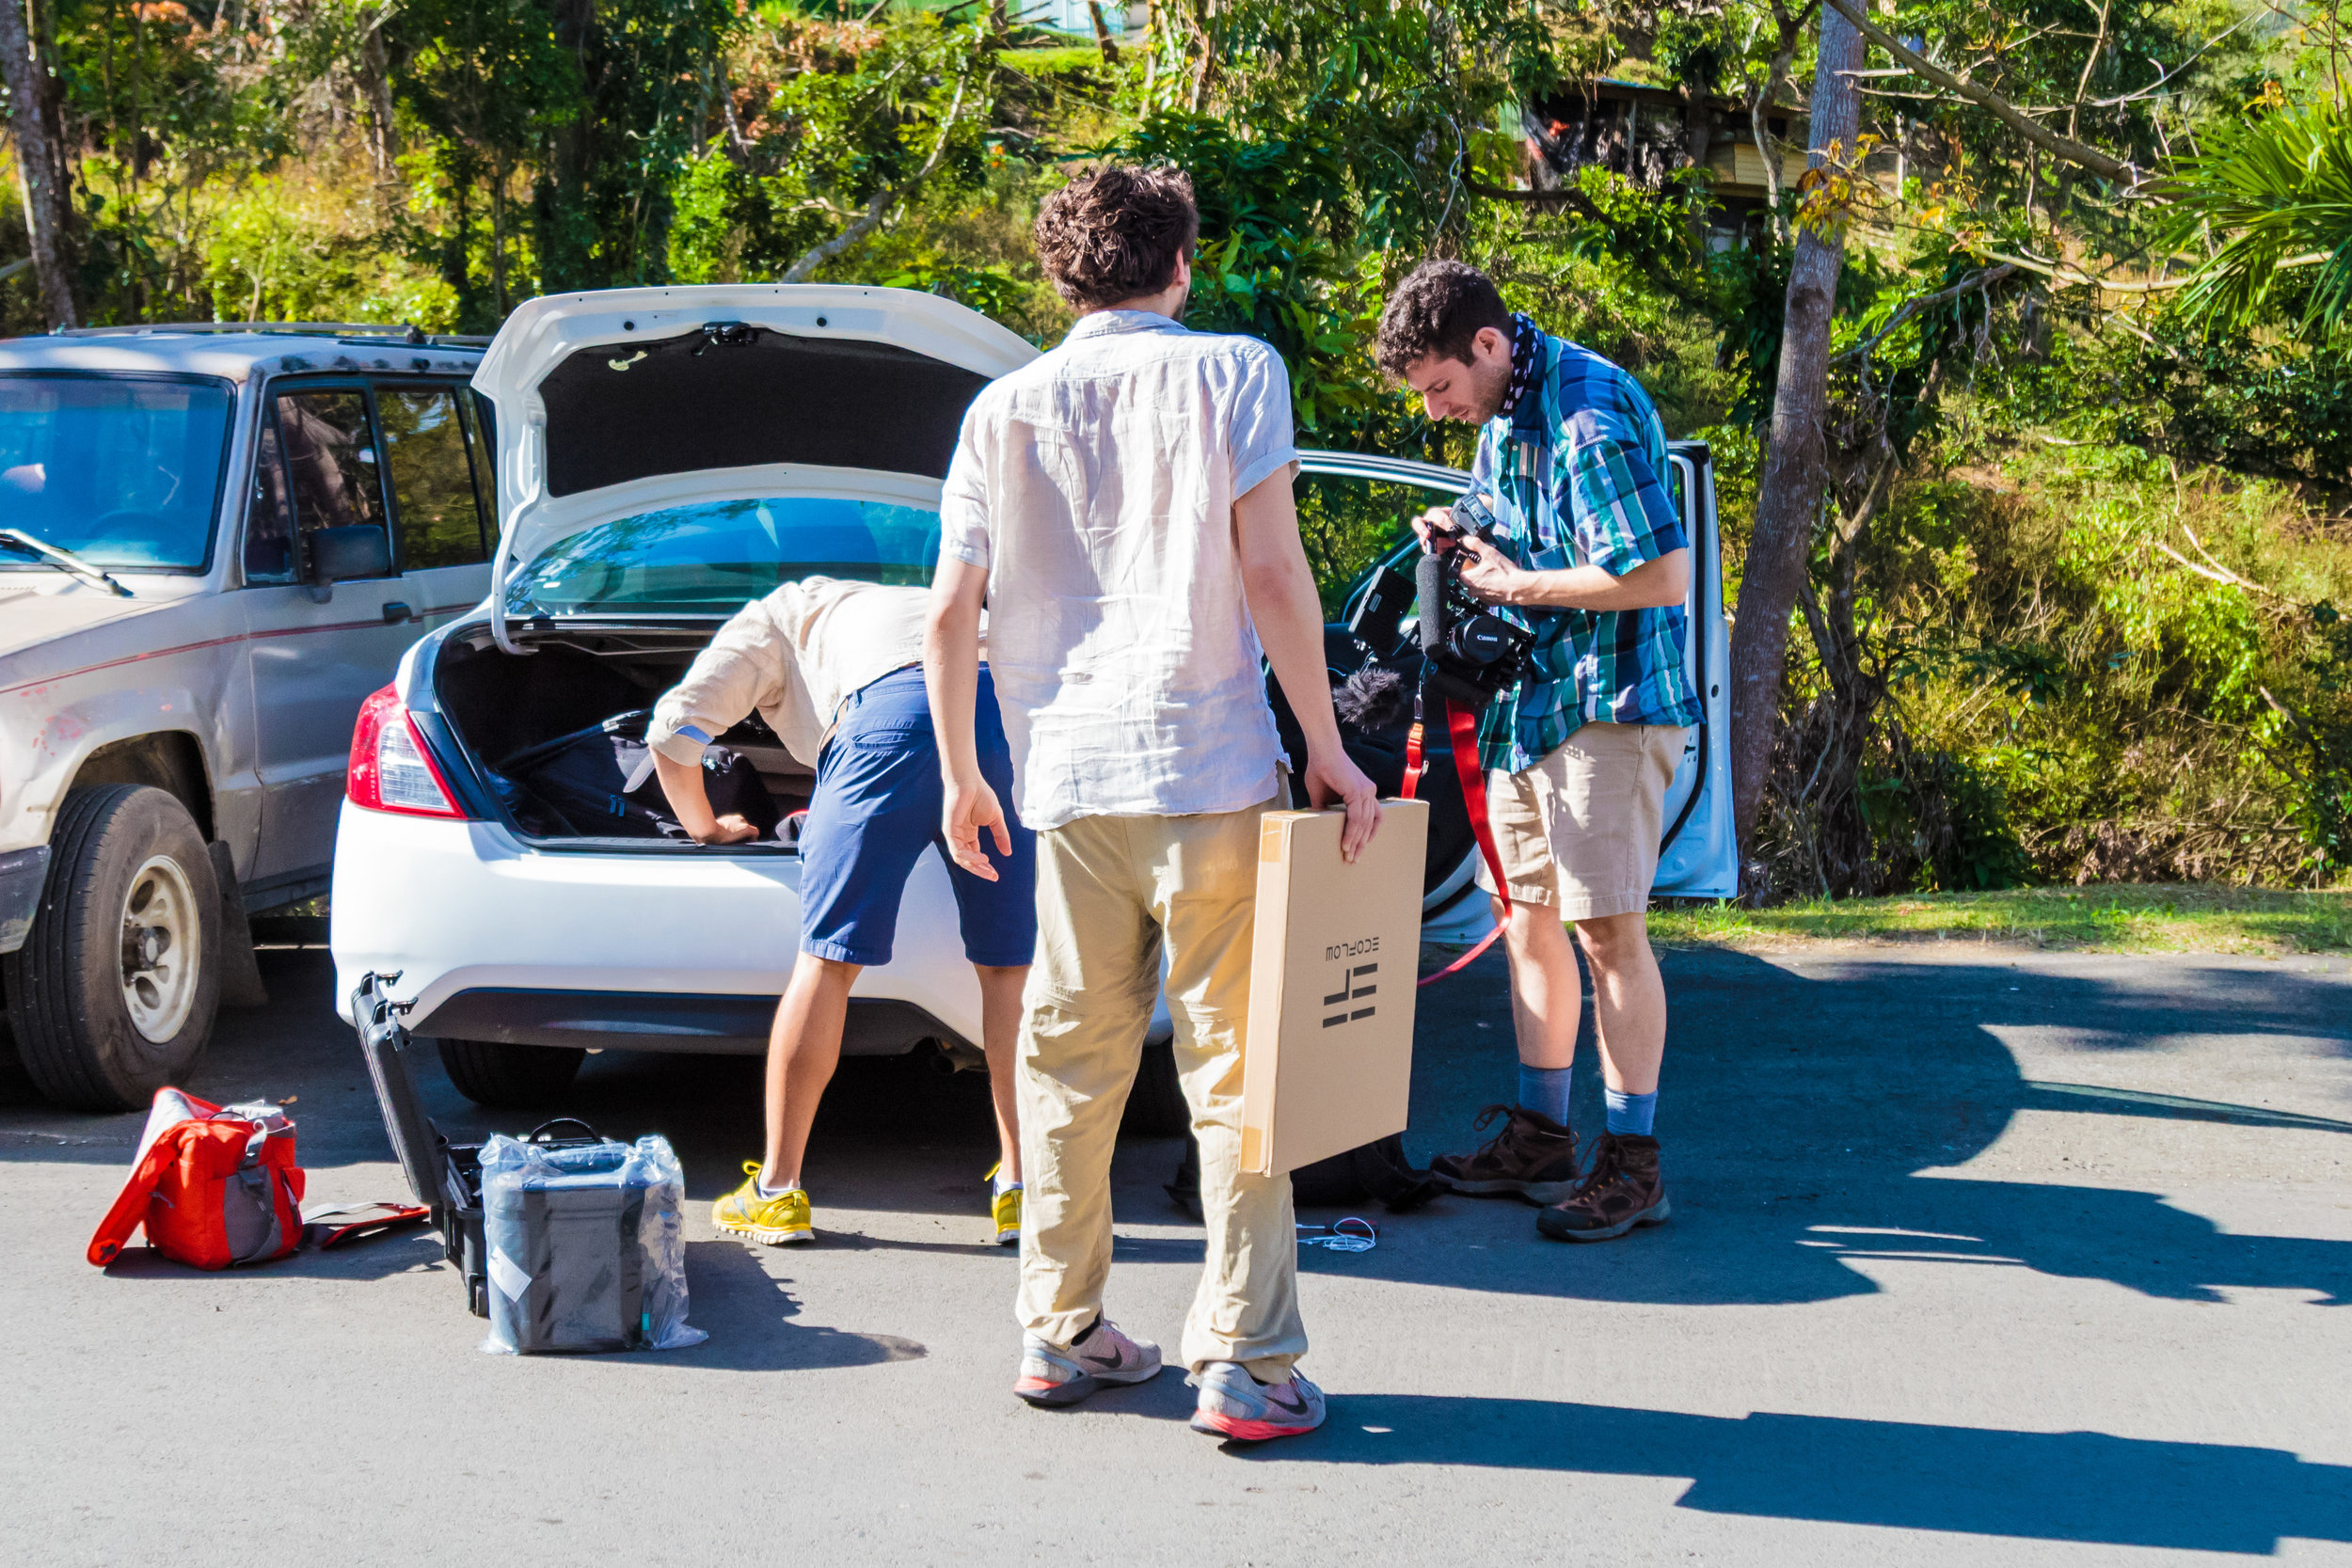 The Energise Puerto Rico team unloads a car crammed full of batteries and camera gear.